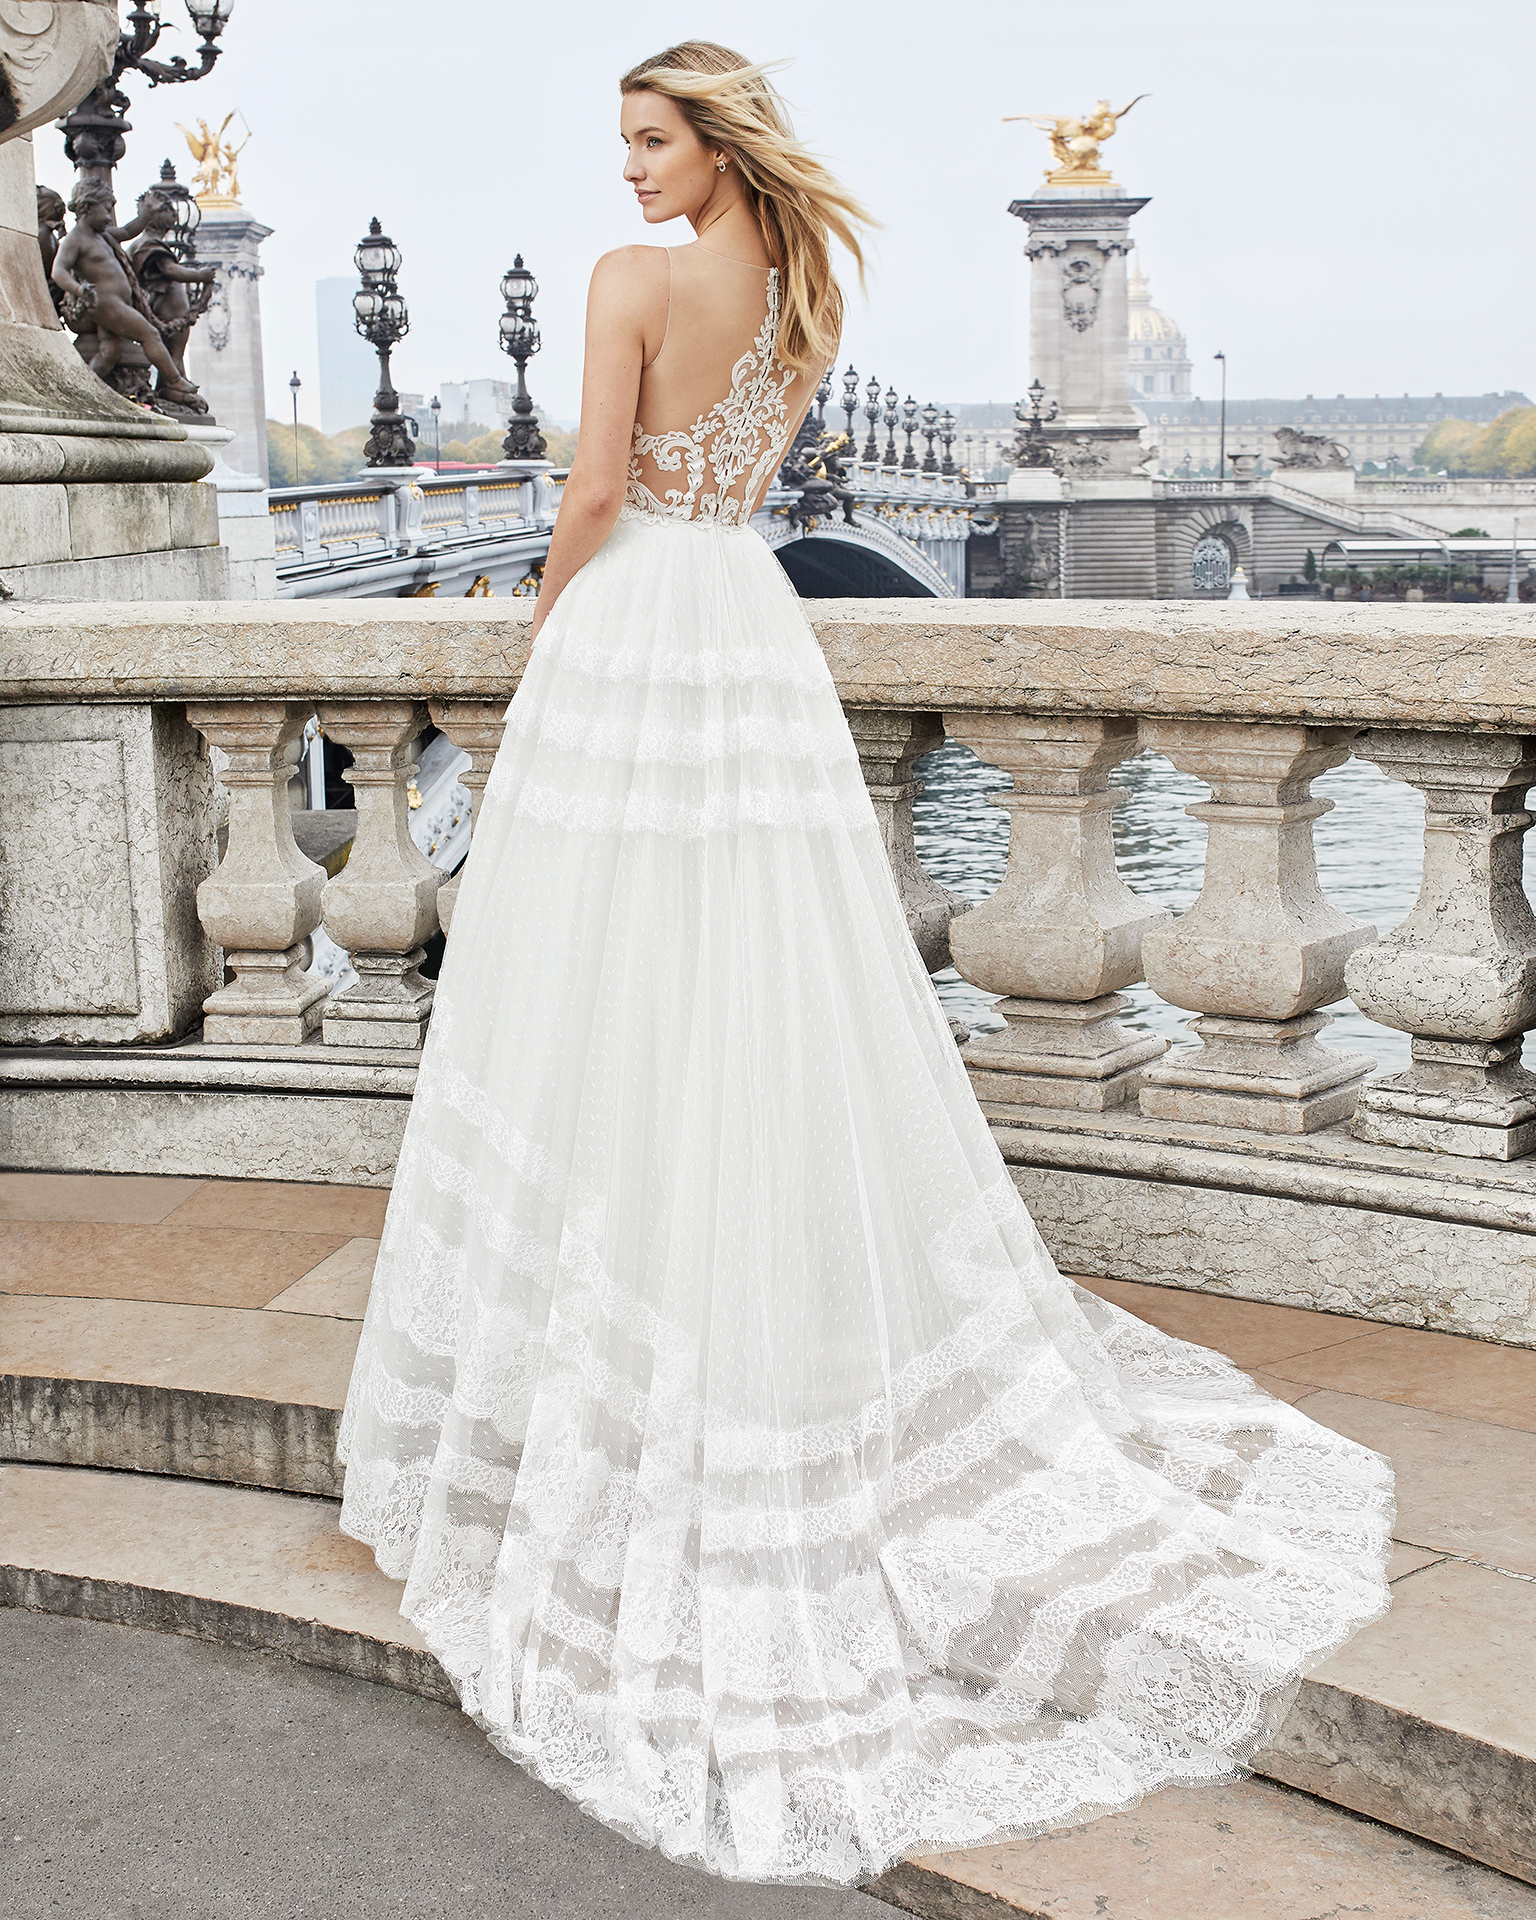 Robe de mariée style romantique en dentelle et tulle. Décolleté plongeant et dos en dentelle avec transparences. Disponible en couleur naturelle. Collection AIRE BARCELONA 2019.